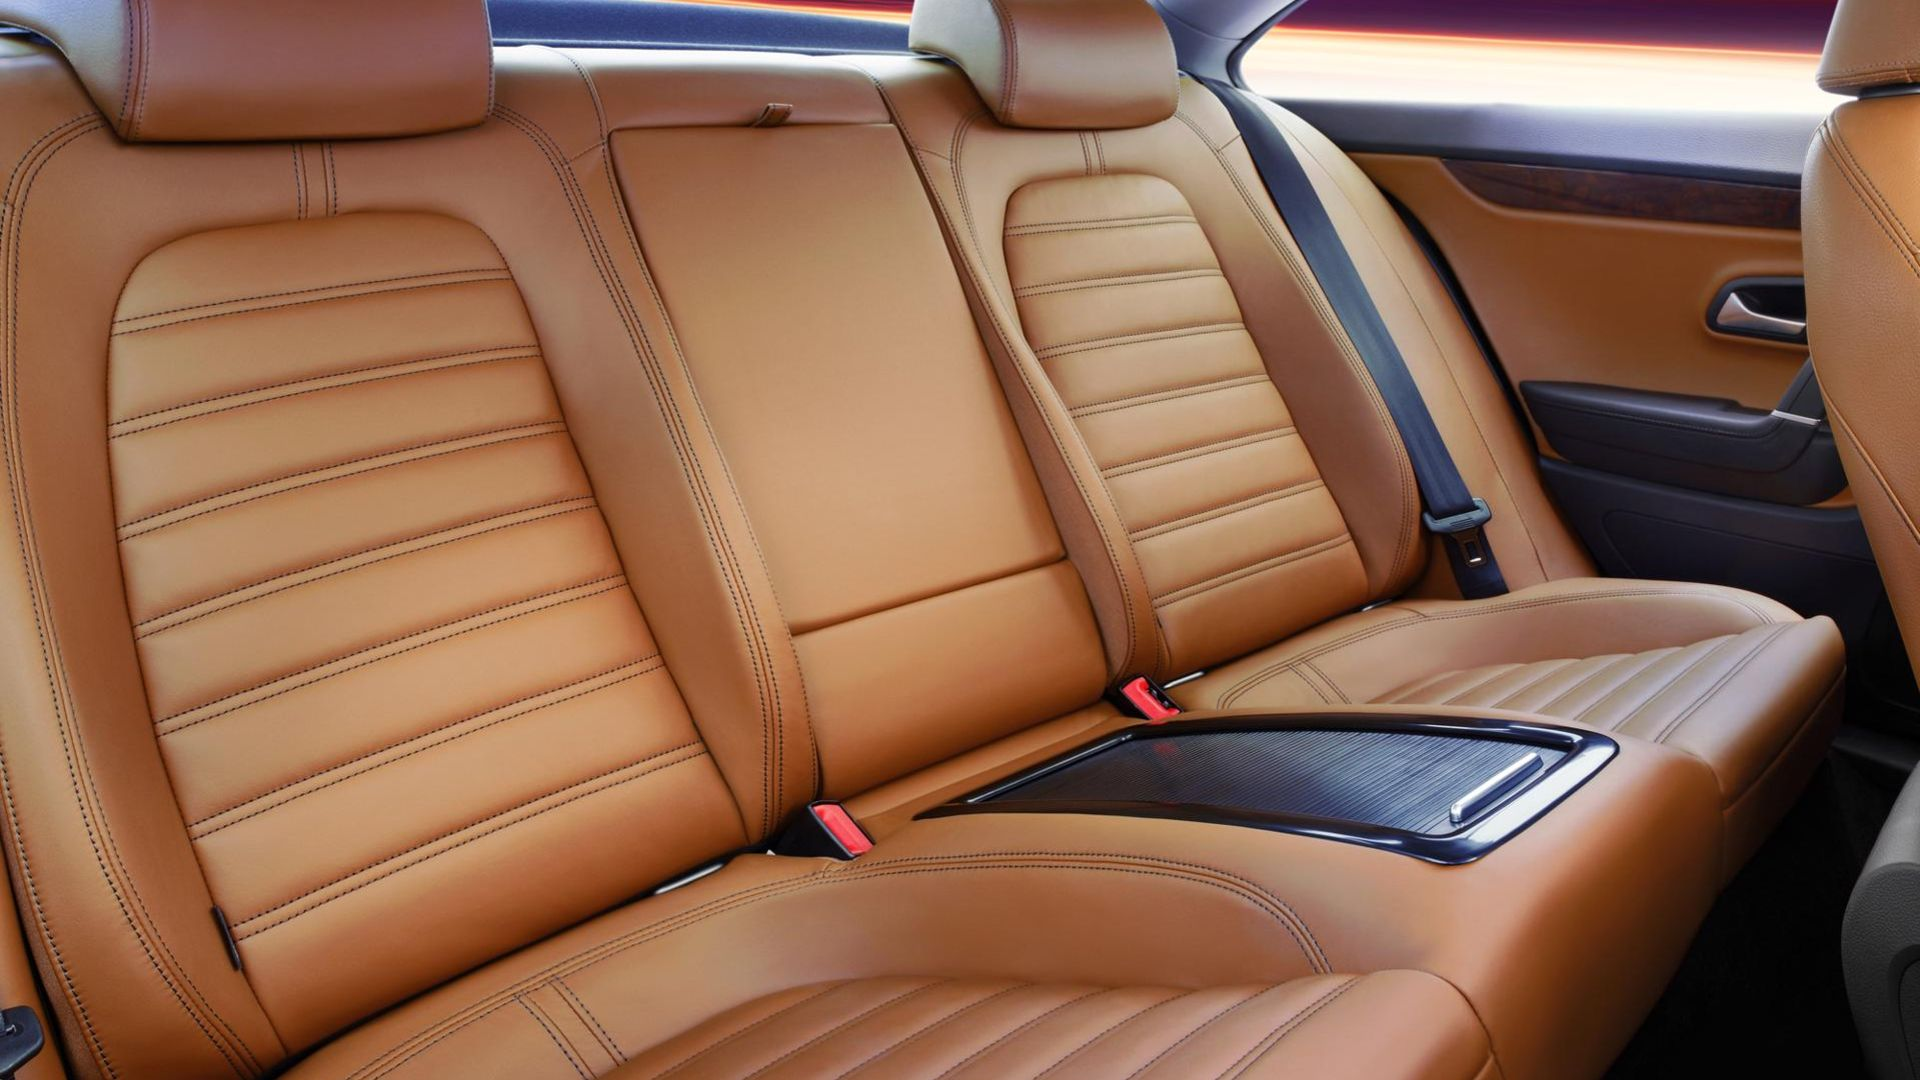 Leather rear seats.